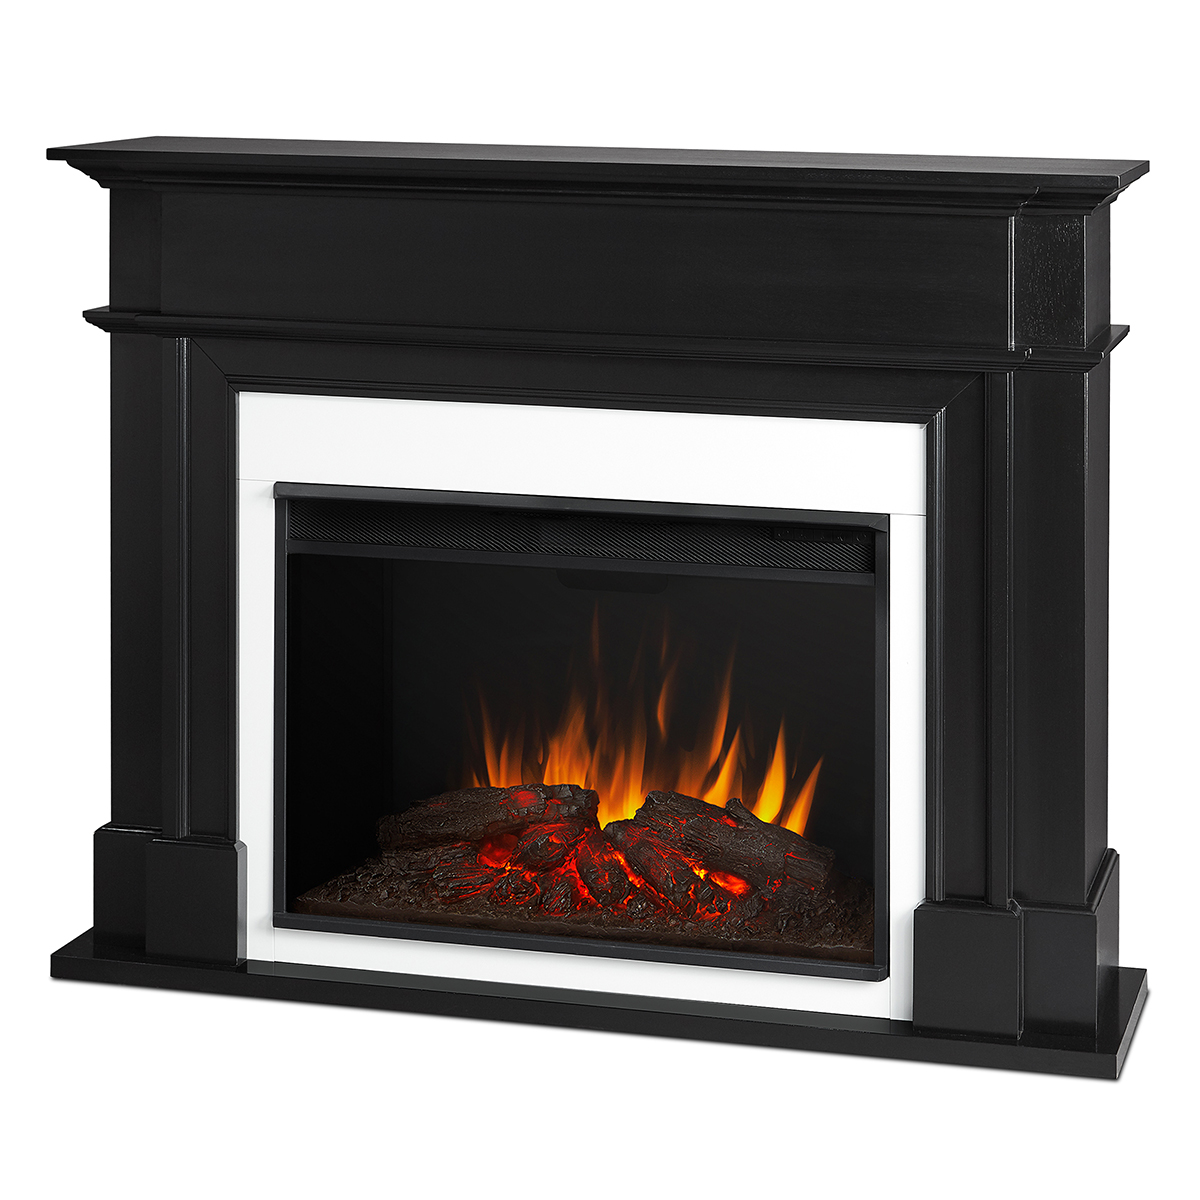 Real Flame Electric Fireplaces Gel Burn Fireplaces